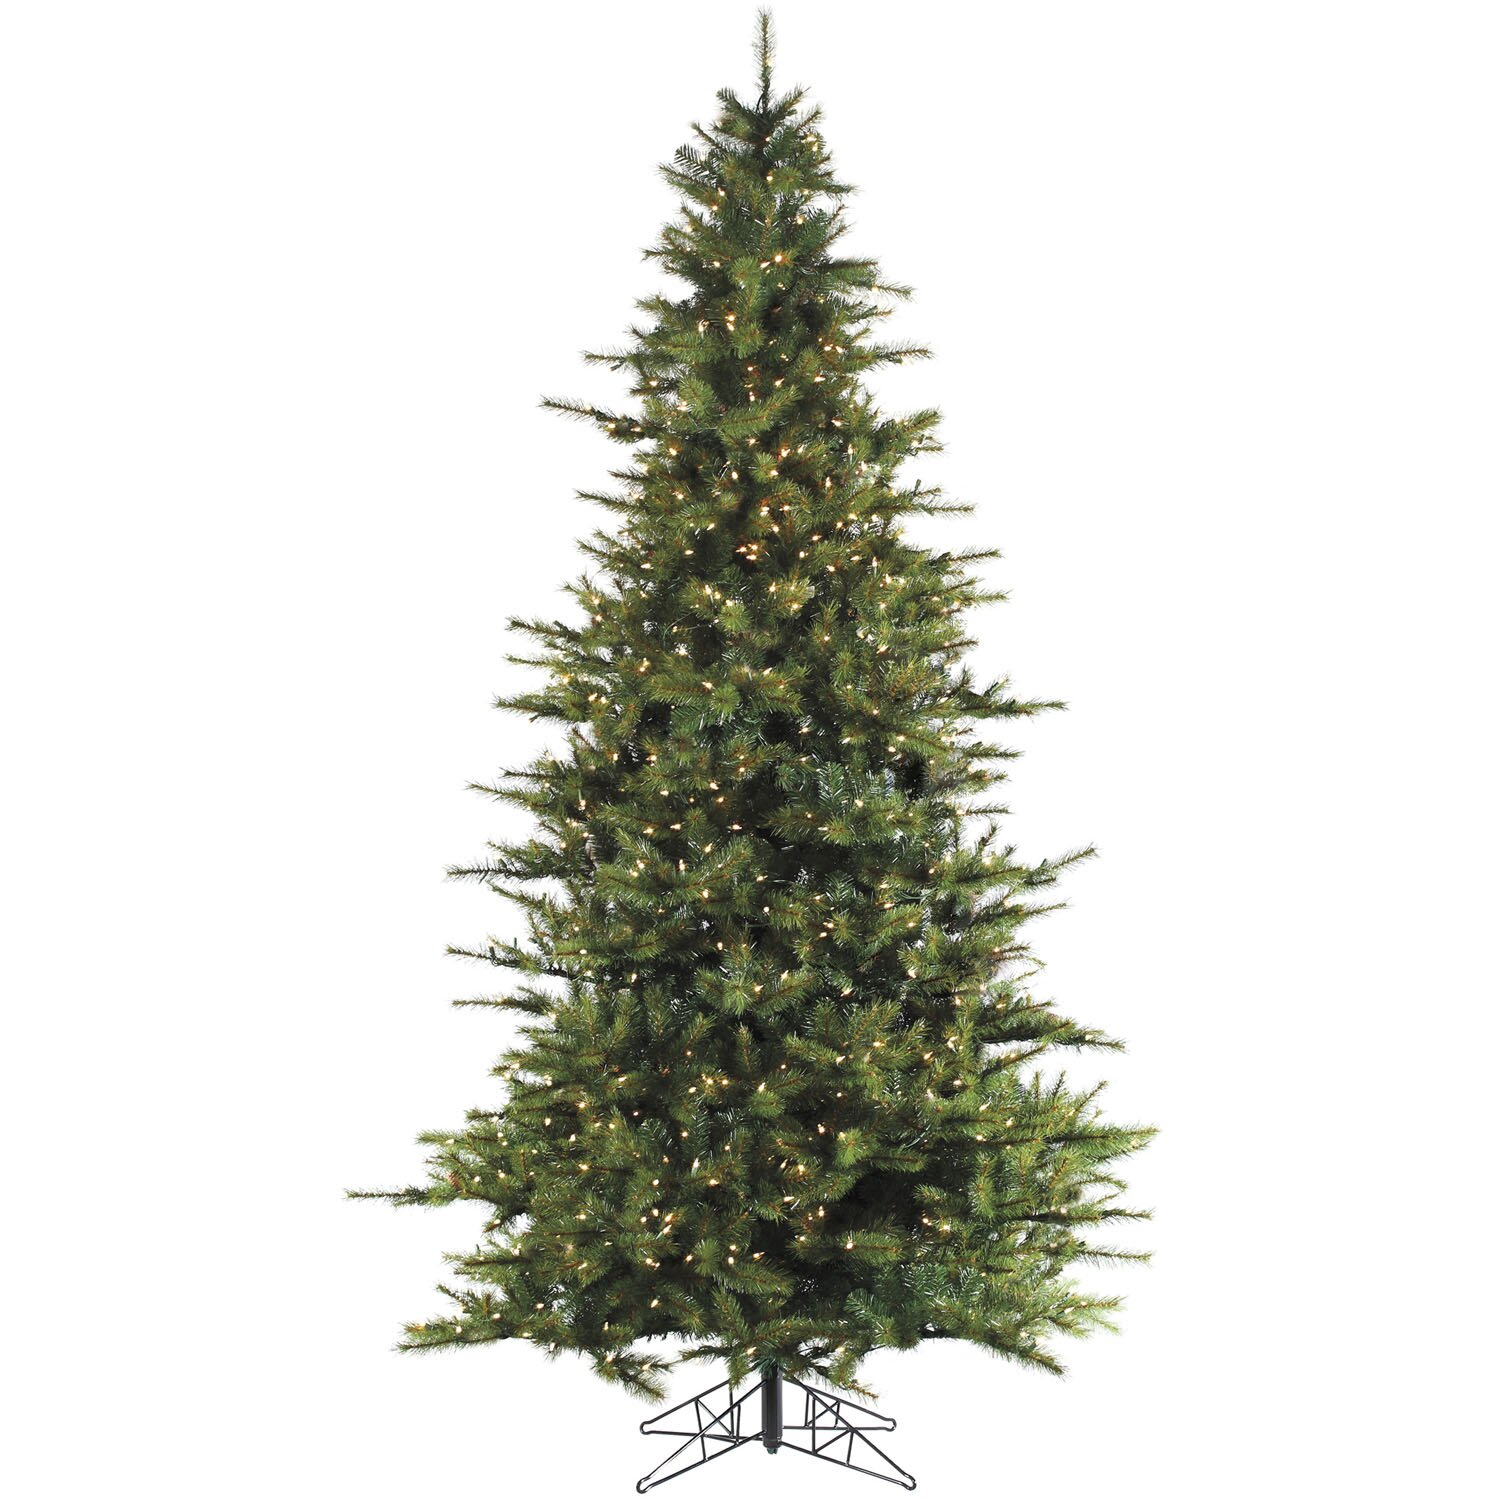 Christmas Tree Shop Hours Pa Part - 22: Hours Somerville Southern Peace Pine Green Artificial Christmas Tree With  Smart String Lights With Stand With Christmas Tree Shop Hours